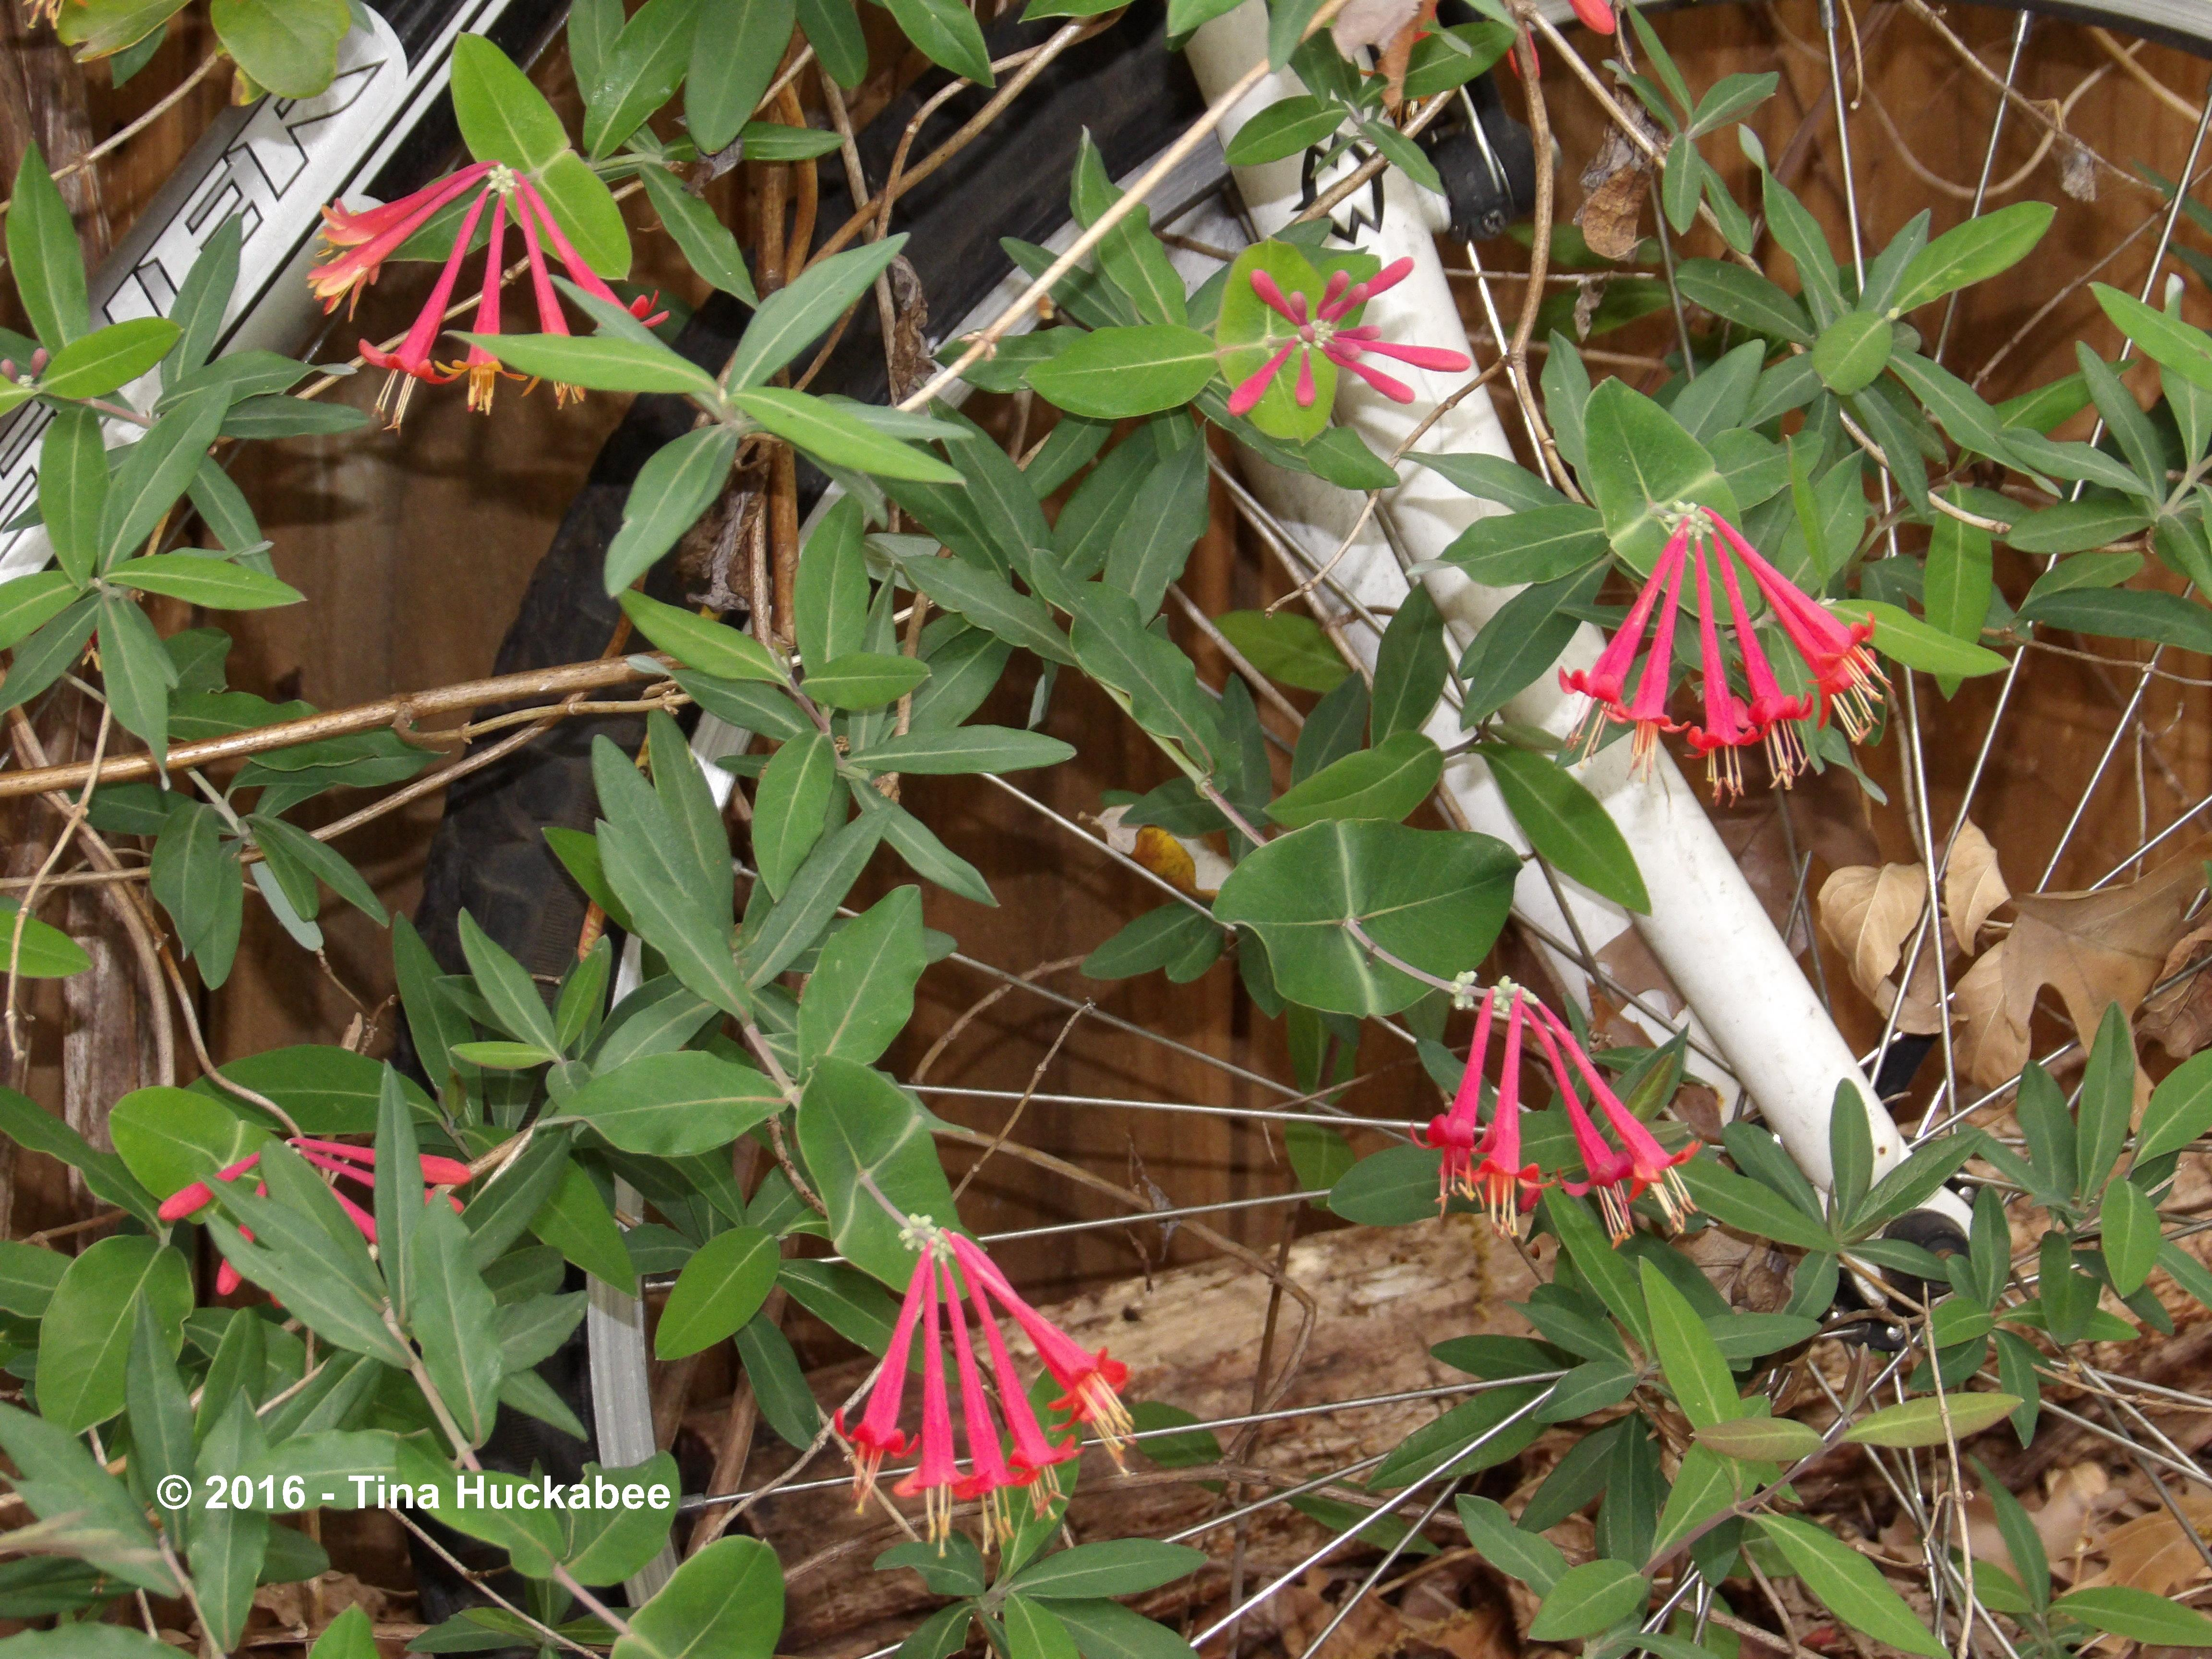 Coral Honeysuckle (Lonicera sempervirens) entwines and embraces Shoshana's bicycle.